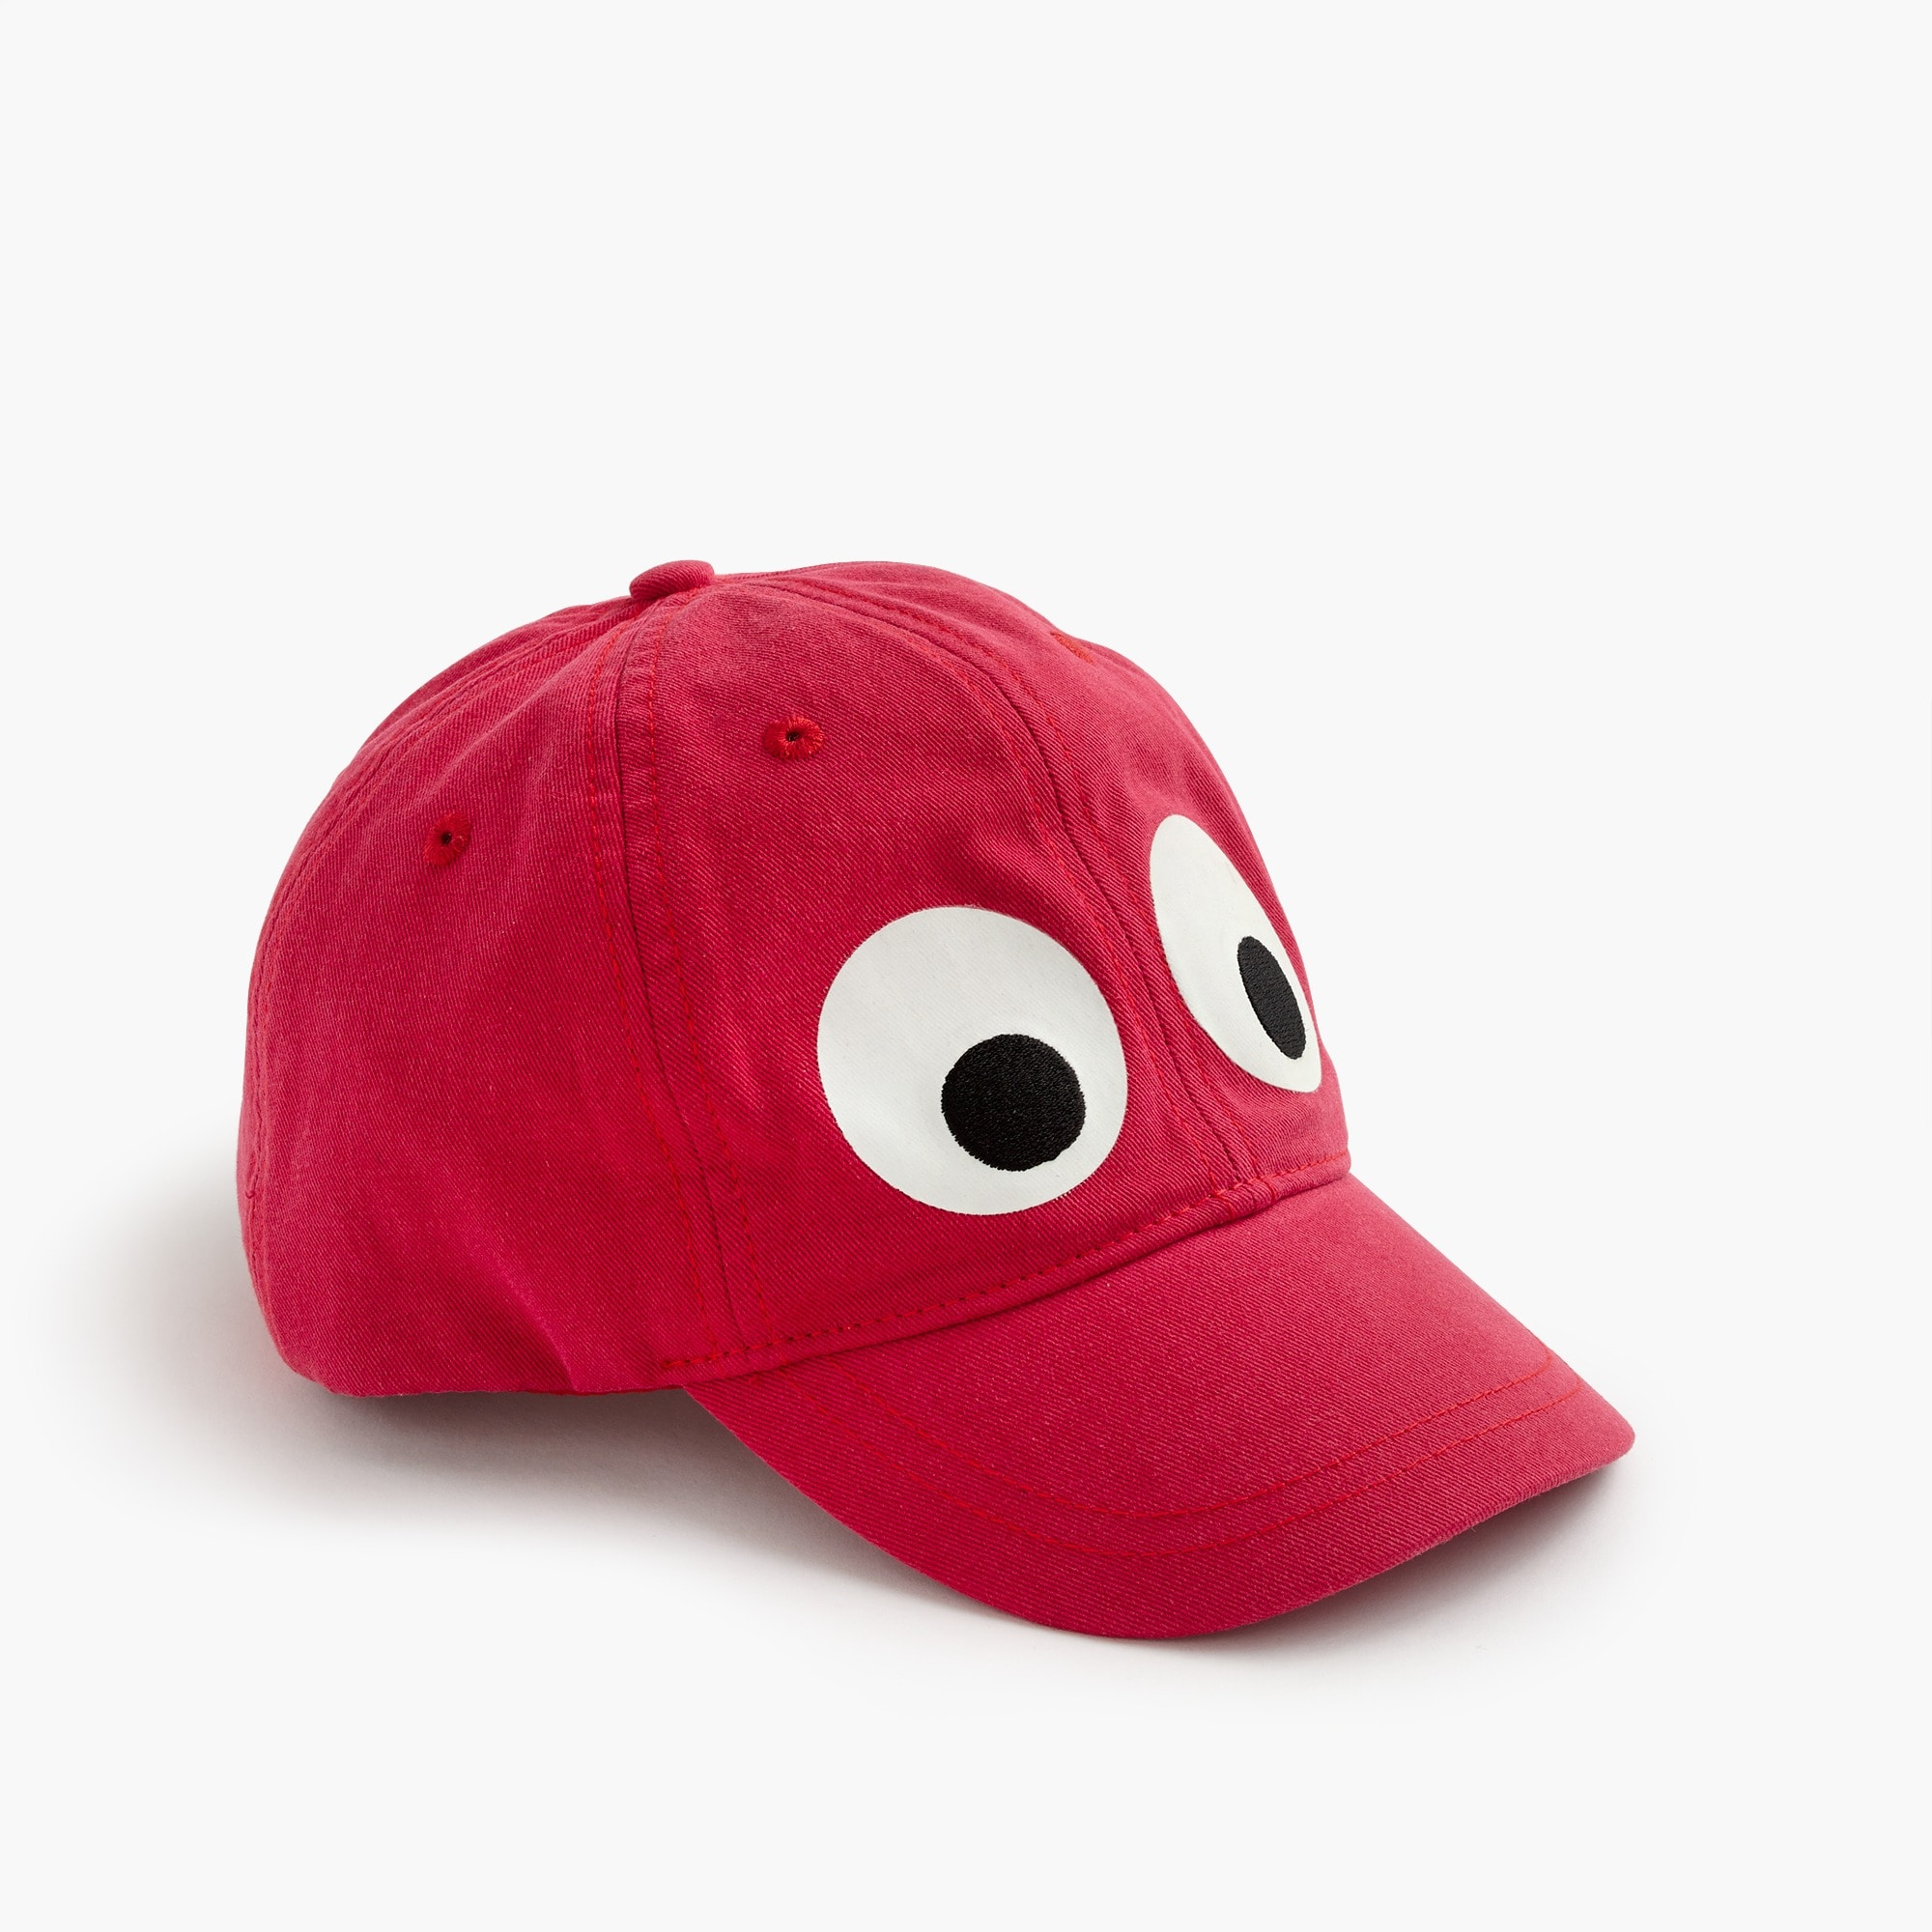 Boys' Max the Monster baseball cap